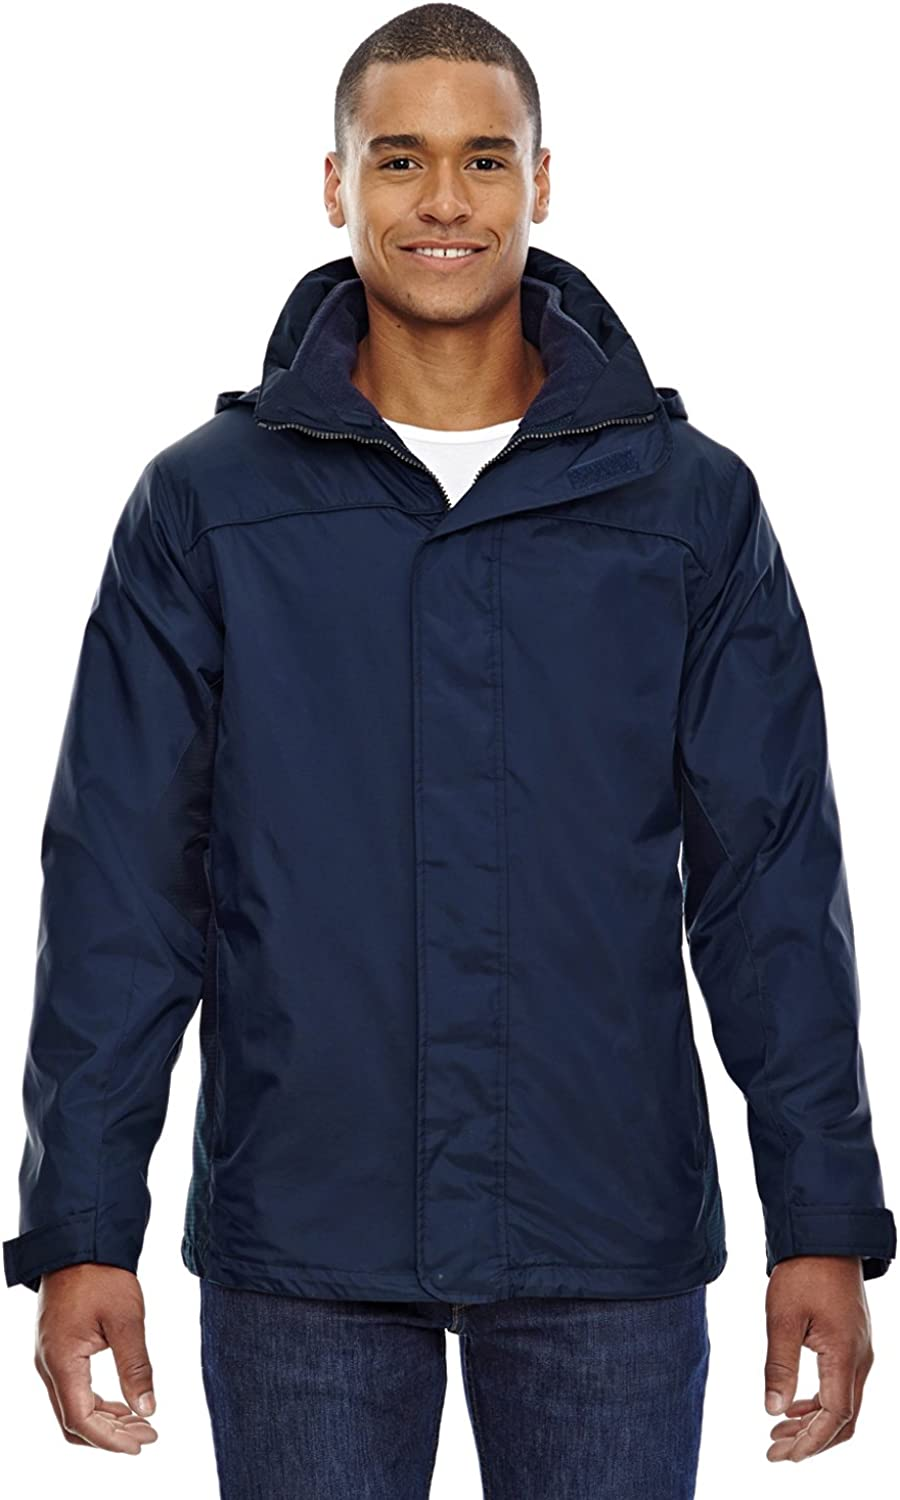 North End Mens 3-In-1 Jacket (88130) -MIDN NAVY 71 -5XL